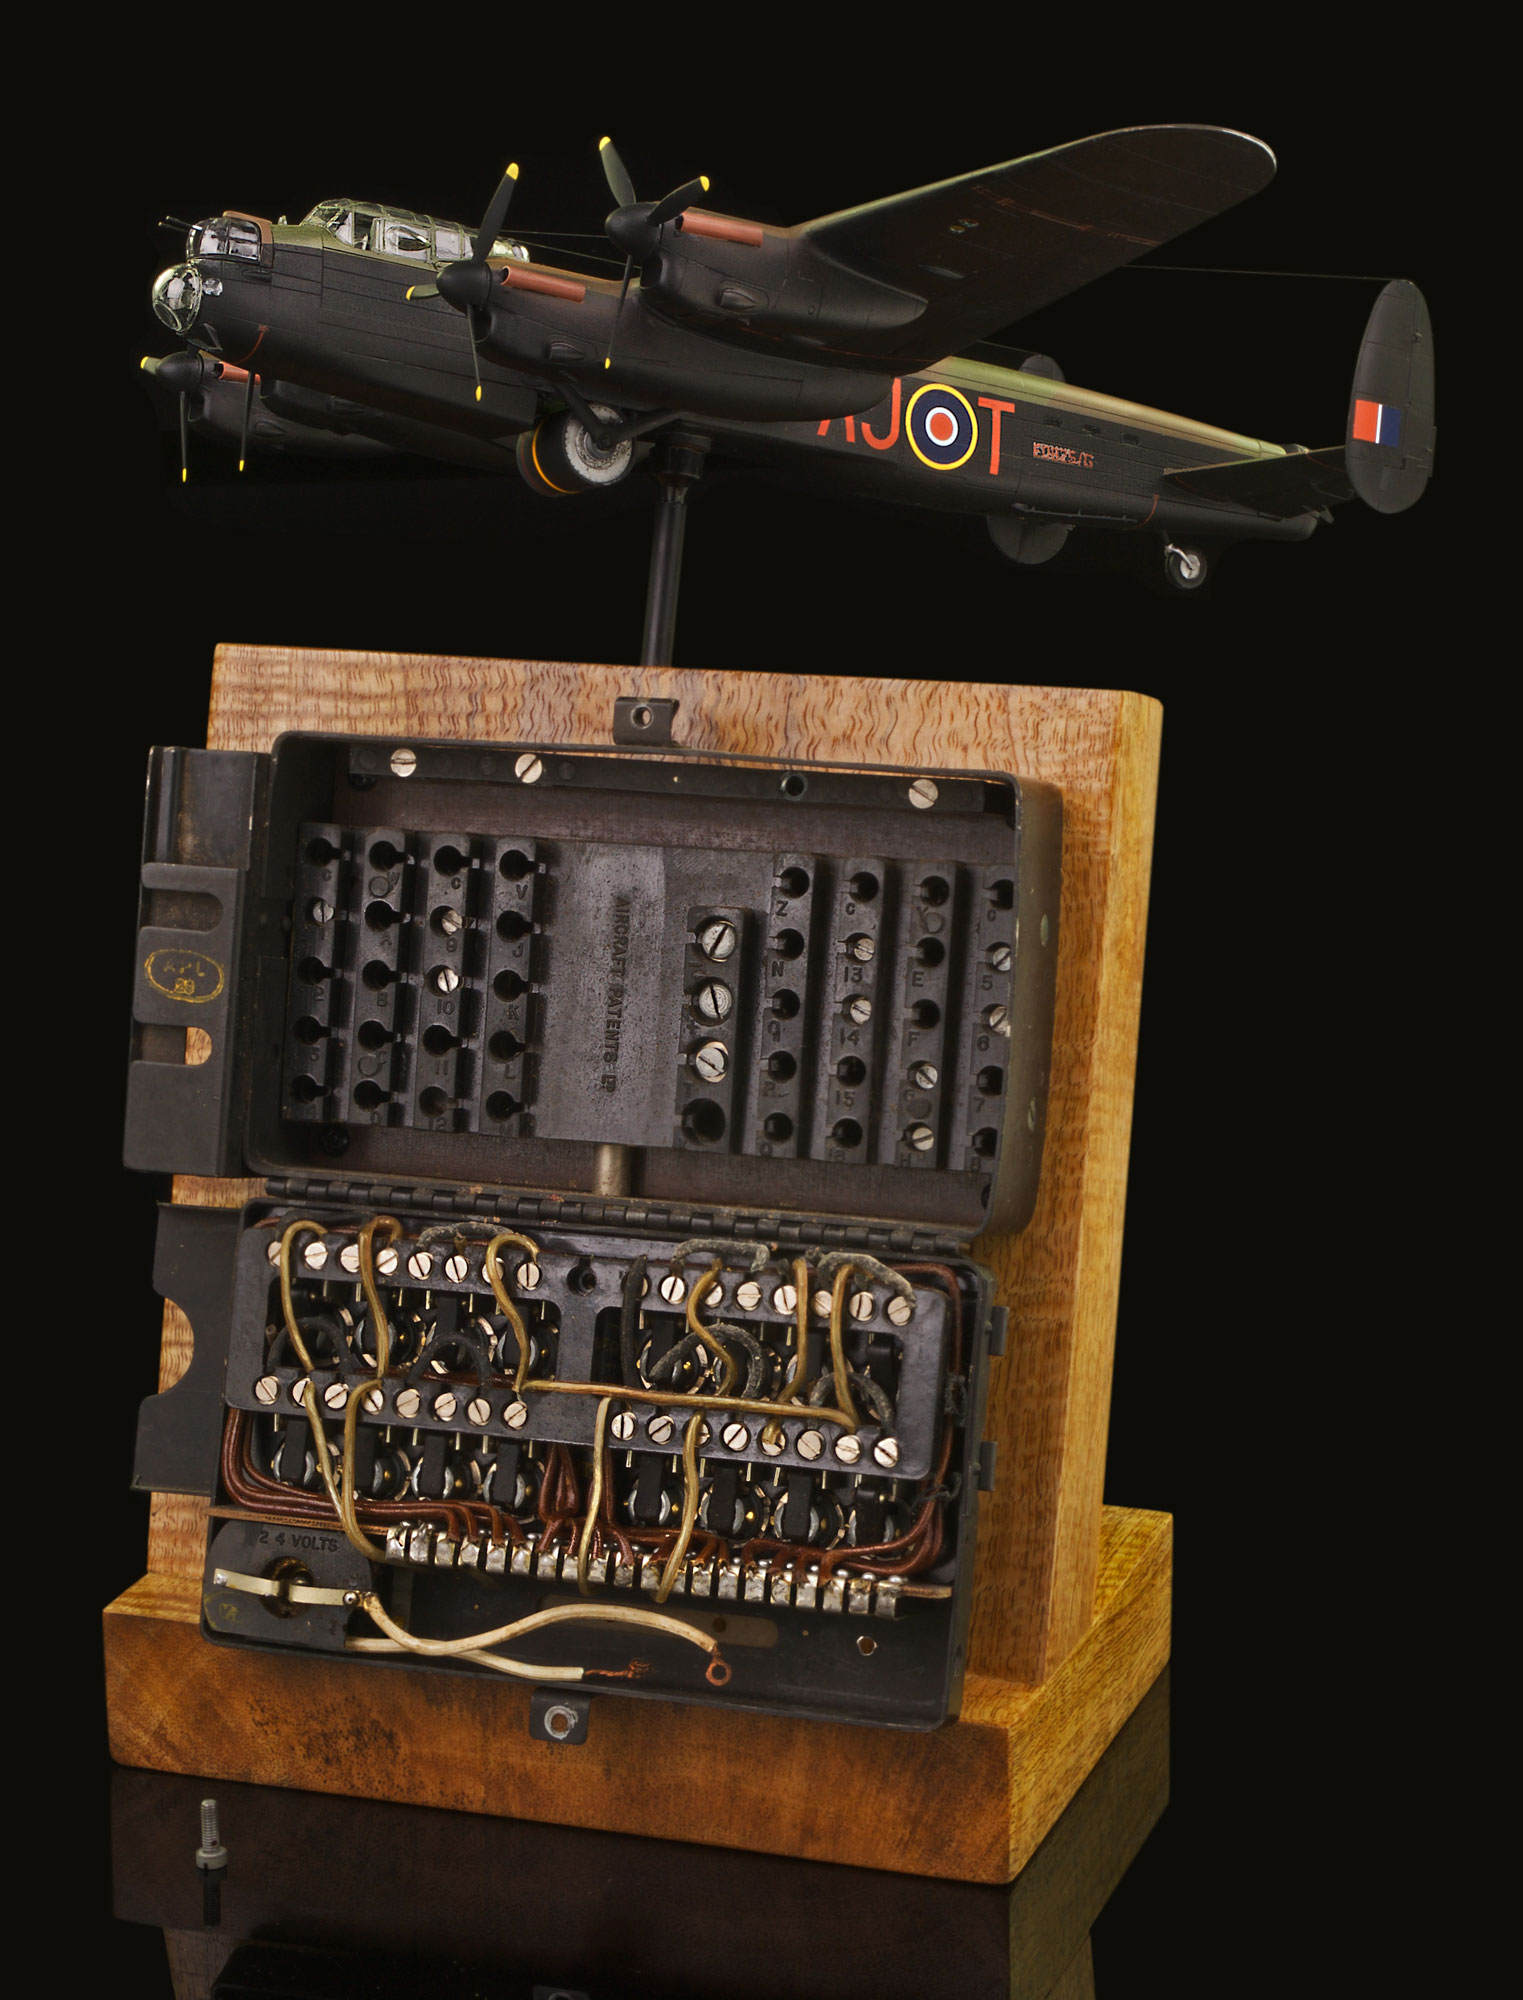 AVRO LANCASTER BOMB SELECTOR CONTROL PANEL